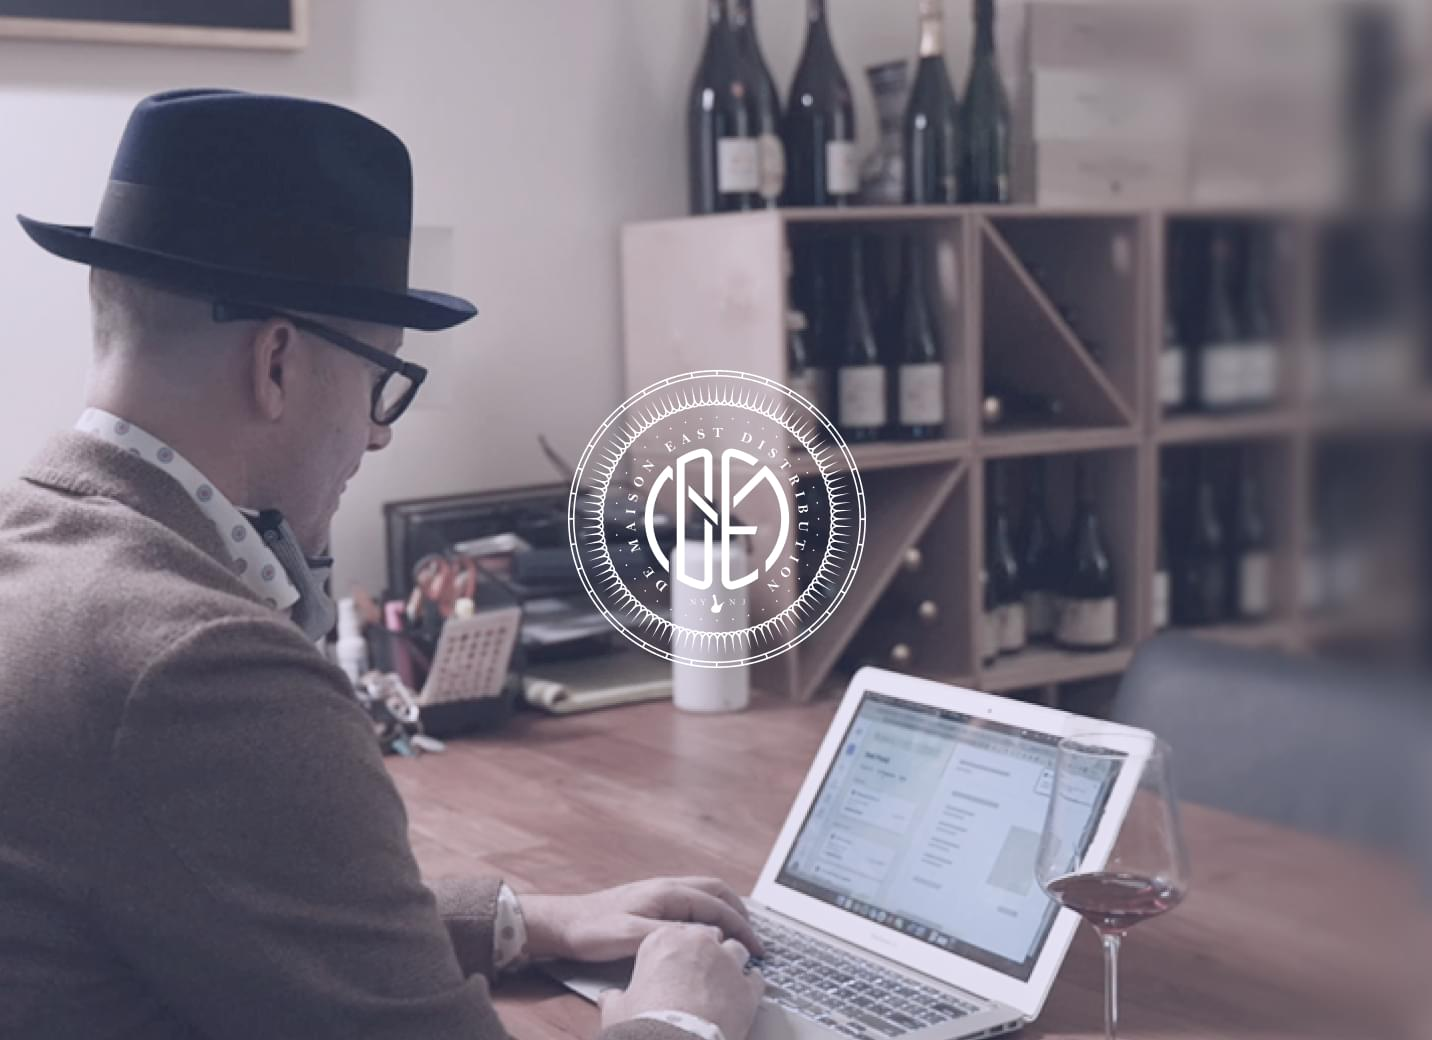 the old-fashioned wine industry is starting to benefit from innovation. For De Maison East, this meant using Melio to handle its bill pay.